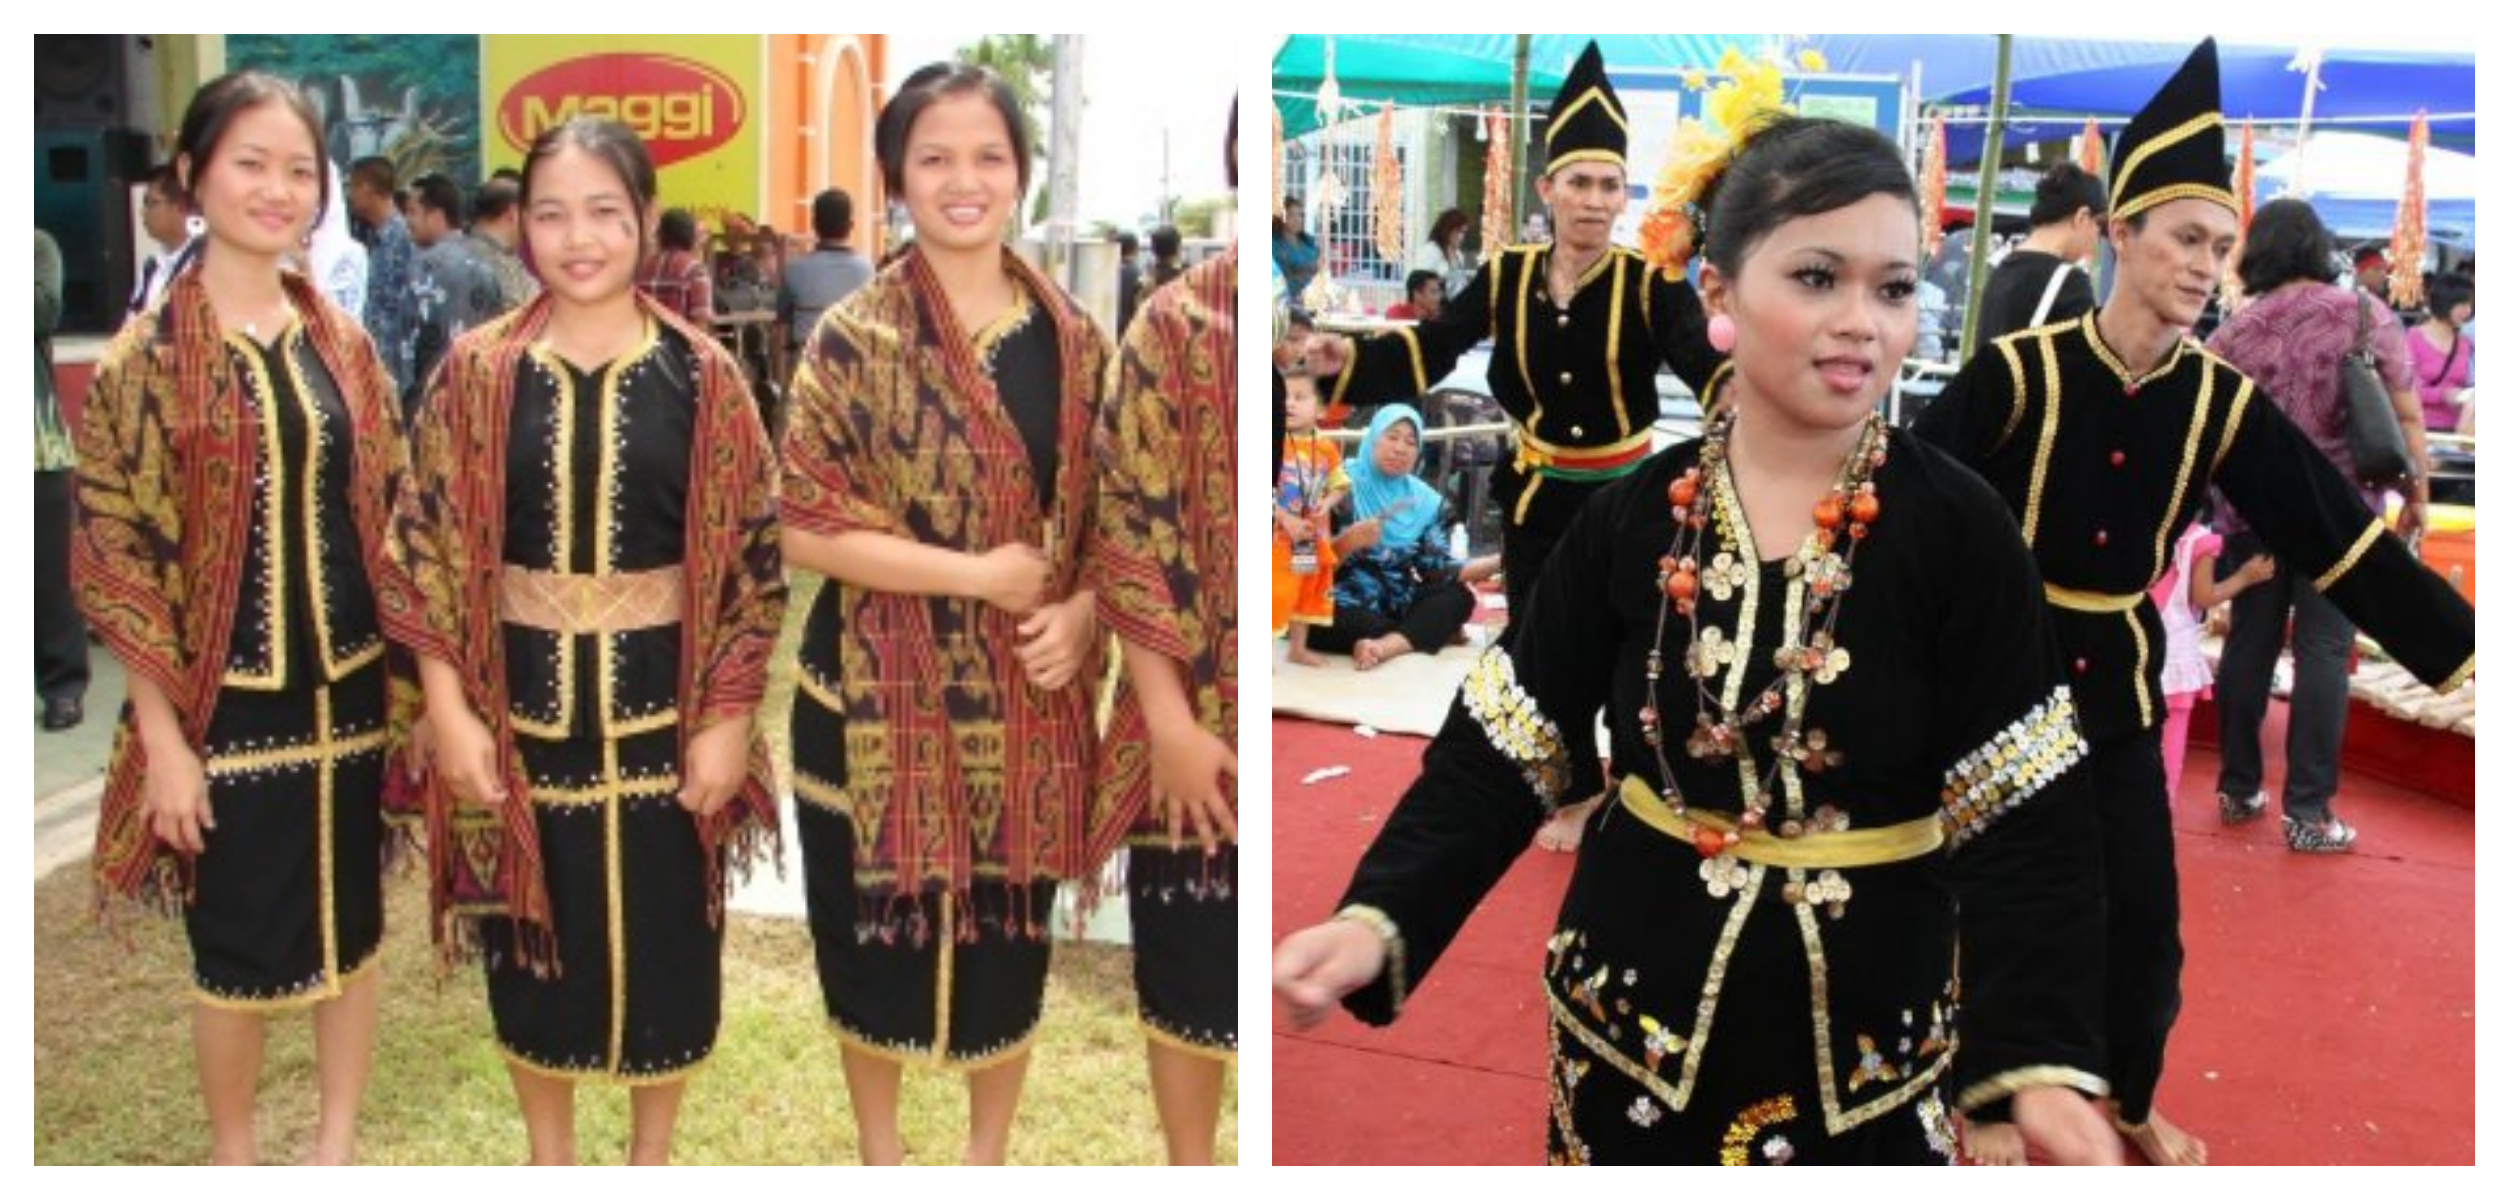 The Dusun people (left) and Orang Sungai (right). Images from mysabah.com and Rustic Borneo